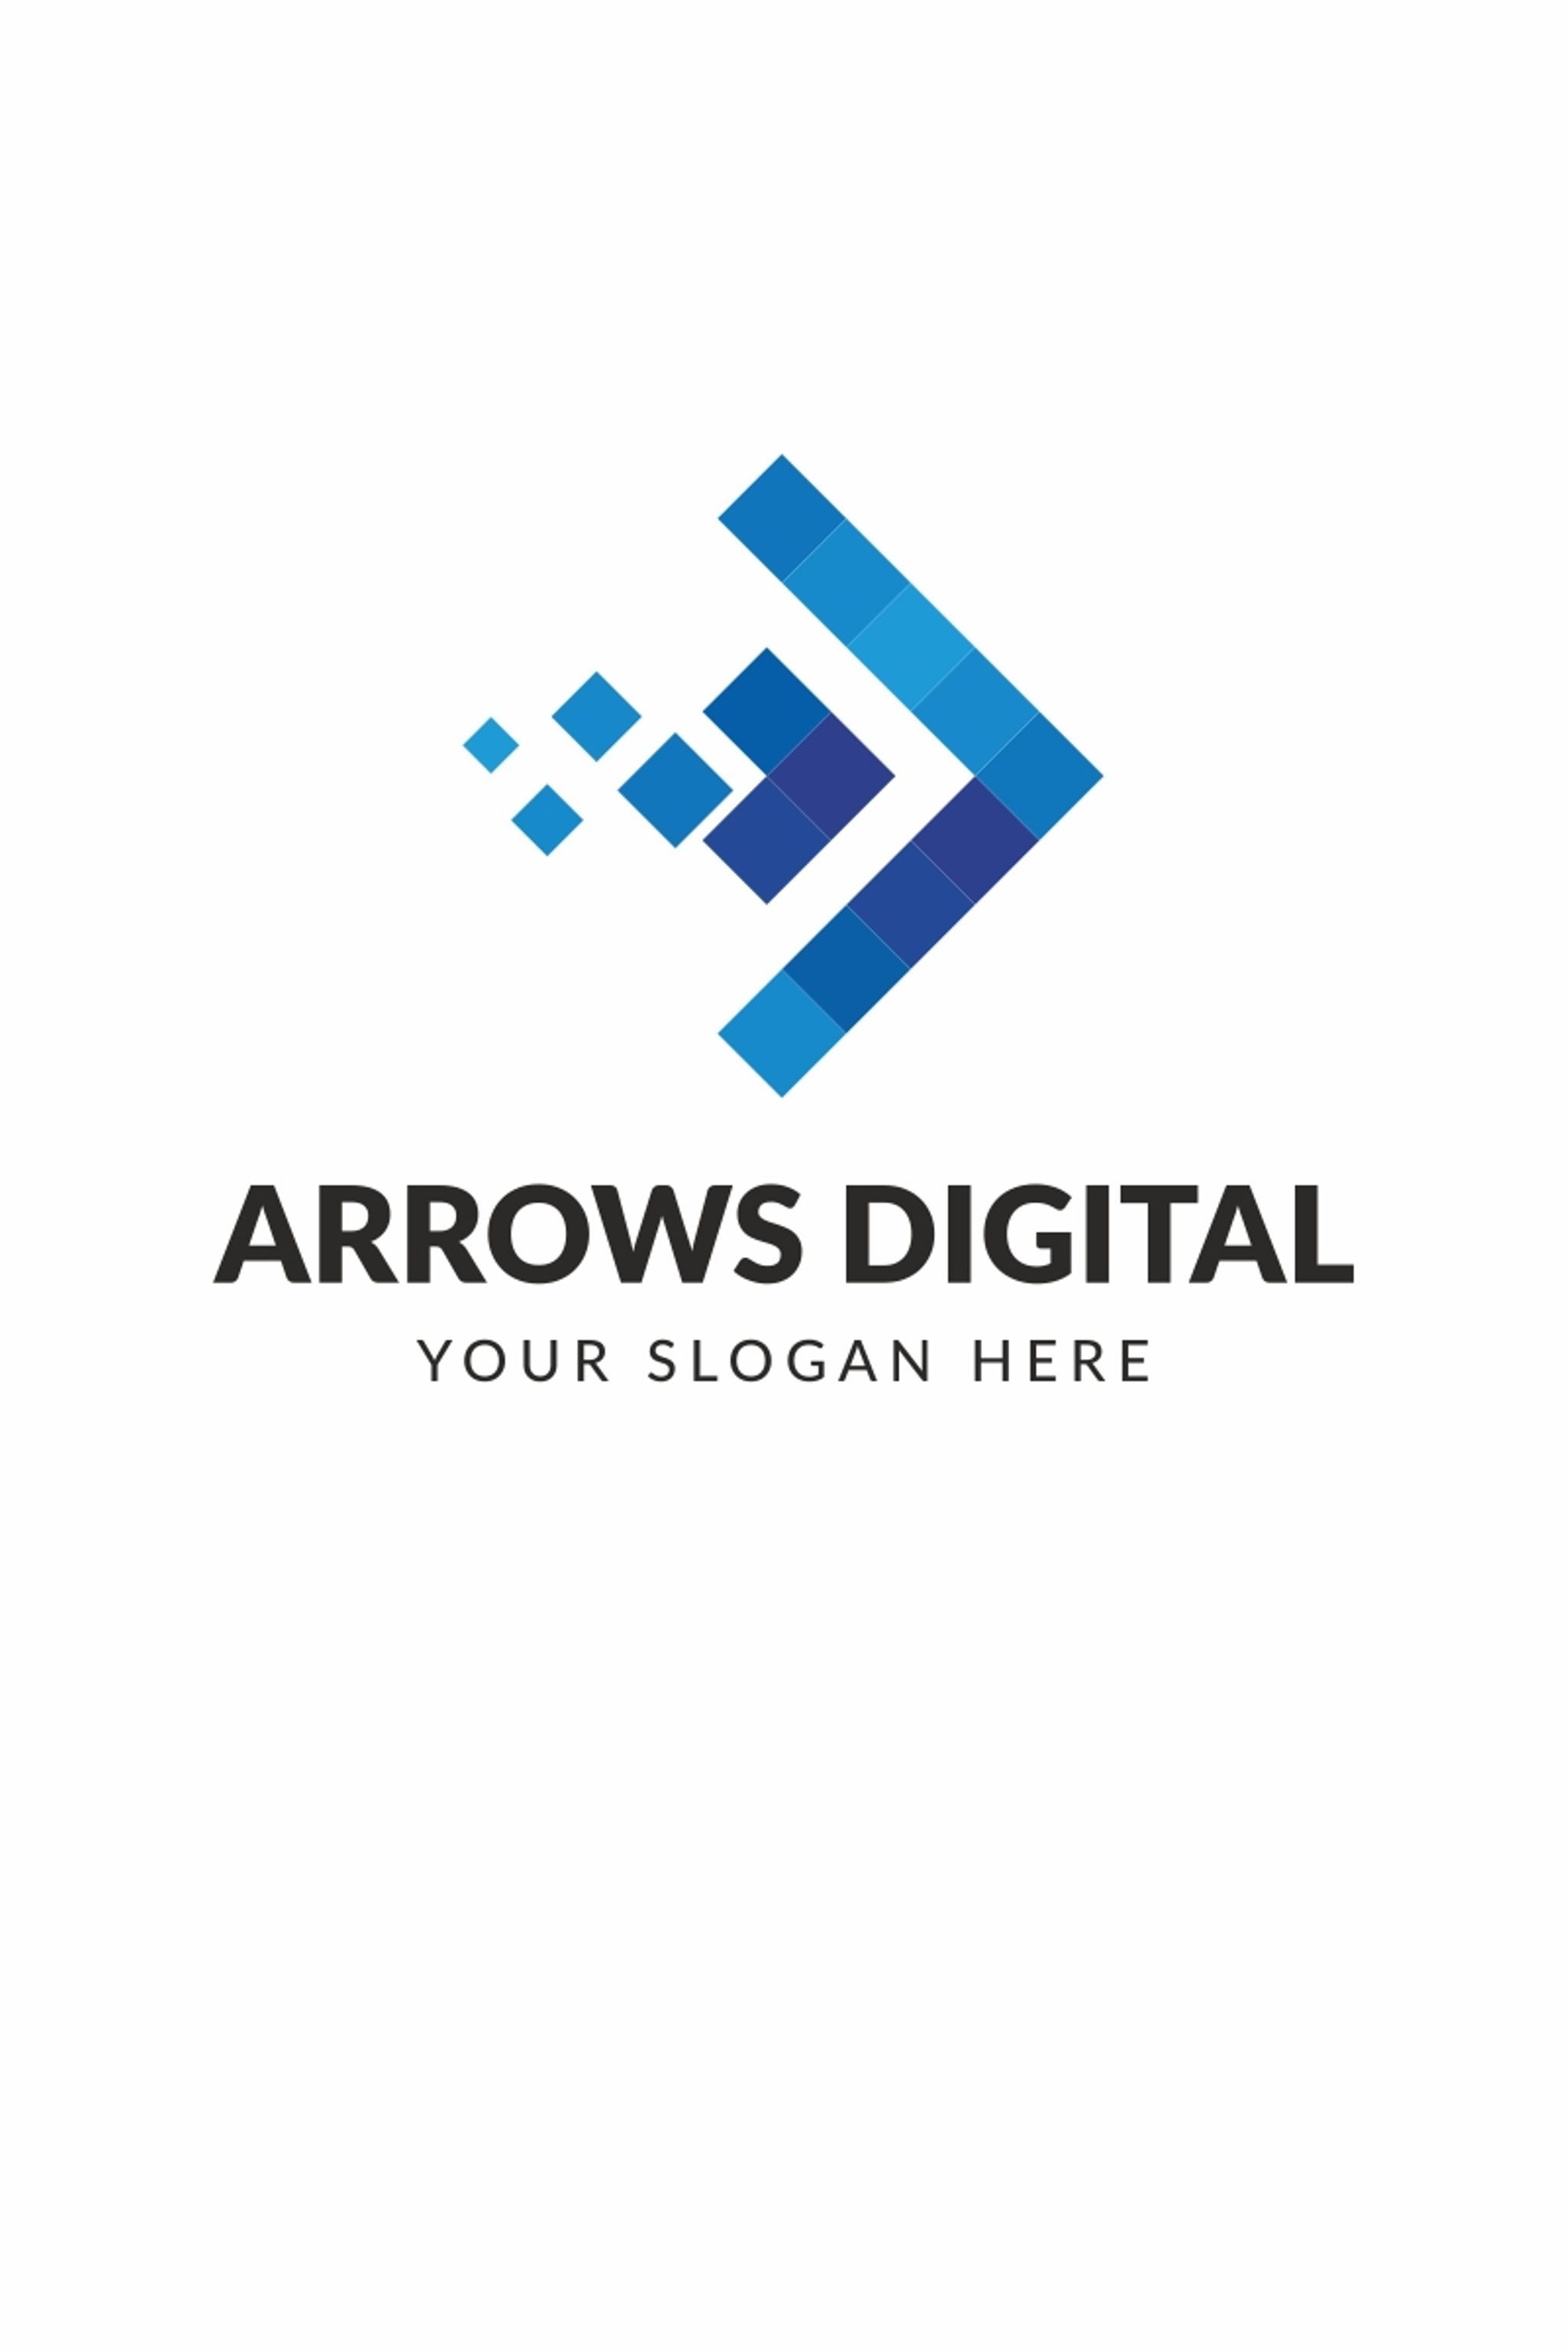 Arrows Digital Logo Template Usd Arrows Digital Multifunctional Logo That Can Be Used In Technological Companies In Compa Logo Templates Marketing Logo Logos